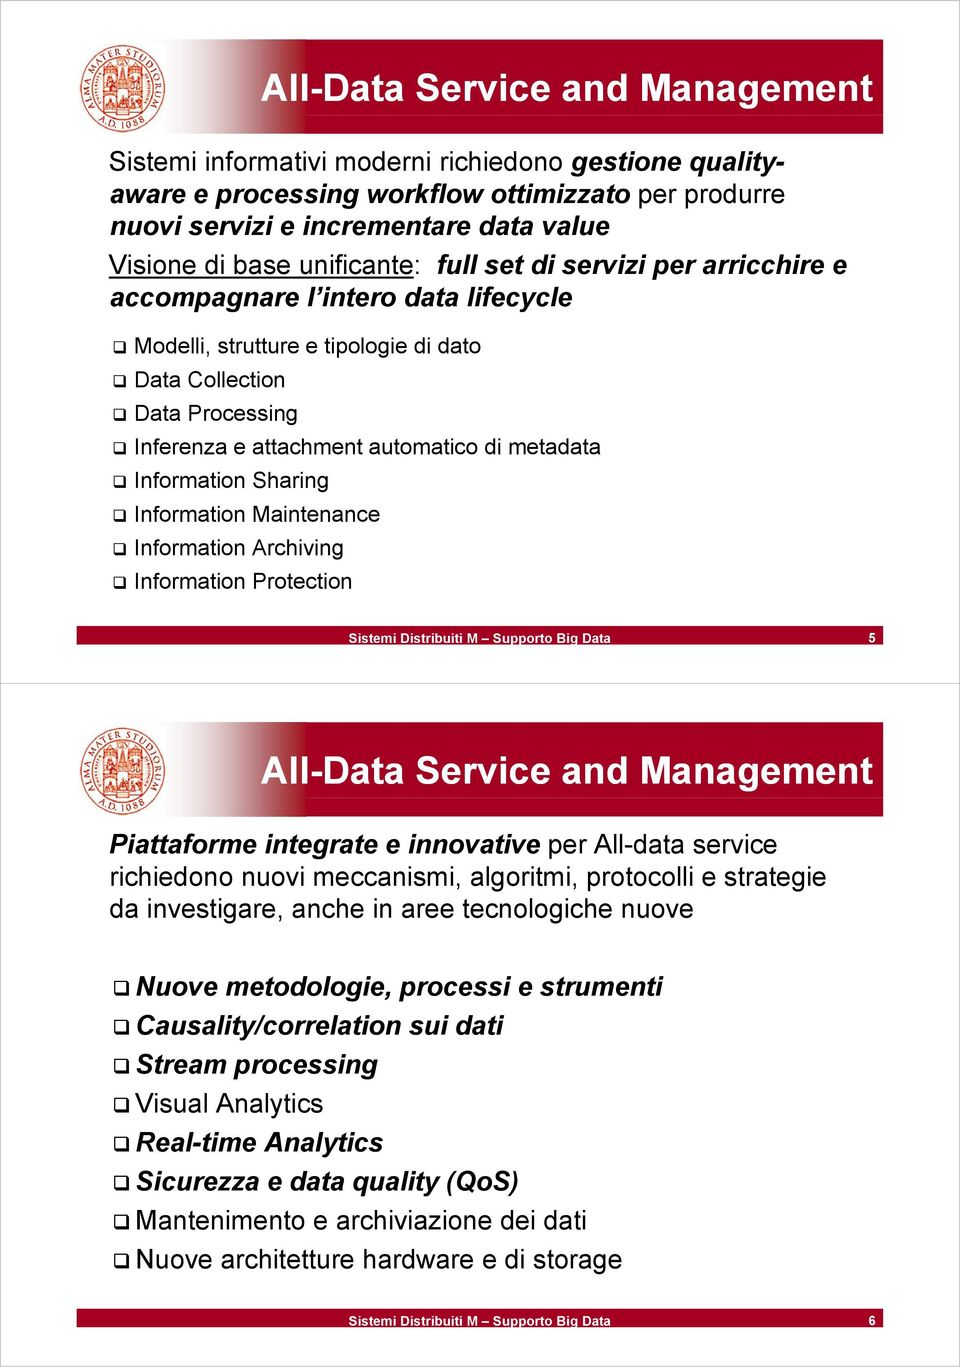 metadata Information Sharing Information Maintenance Information Archiving Information Protection 5 All-Data Service and Management Piattaforme integrate e innovative per All-data service richiedono